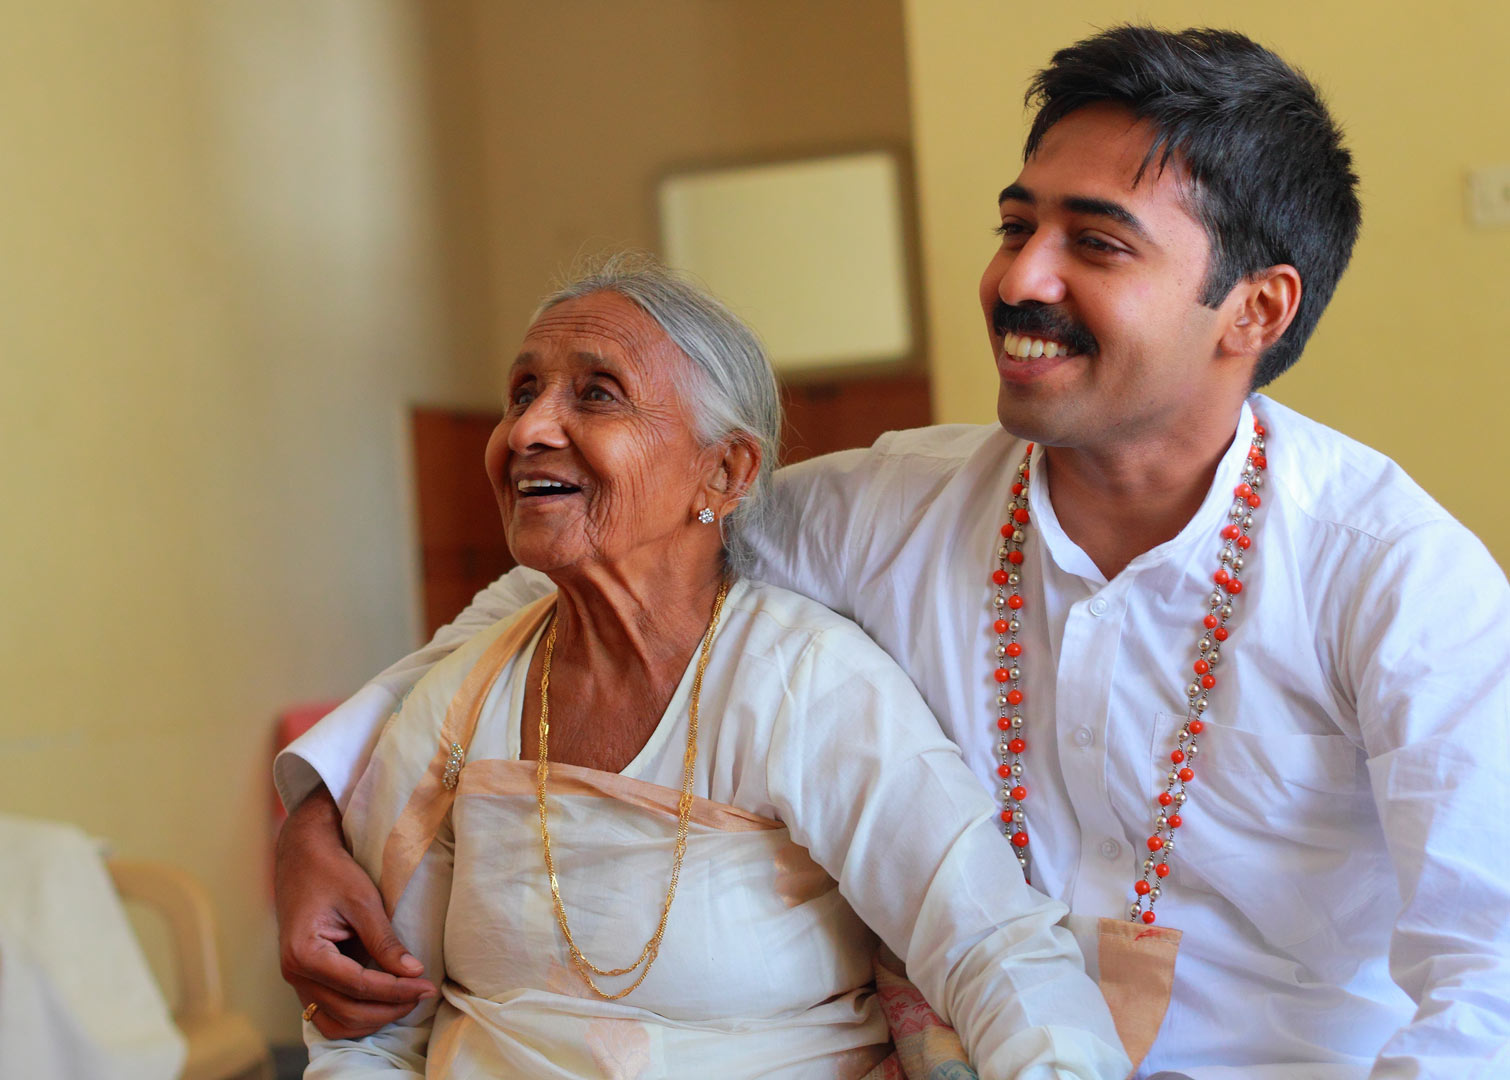 A wedding morning scene with the groom and his grandmother